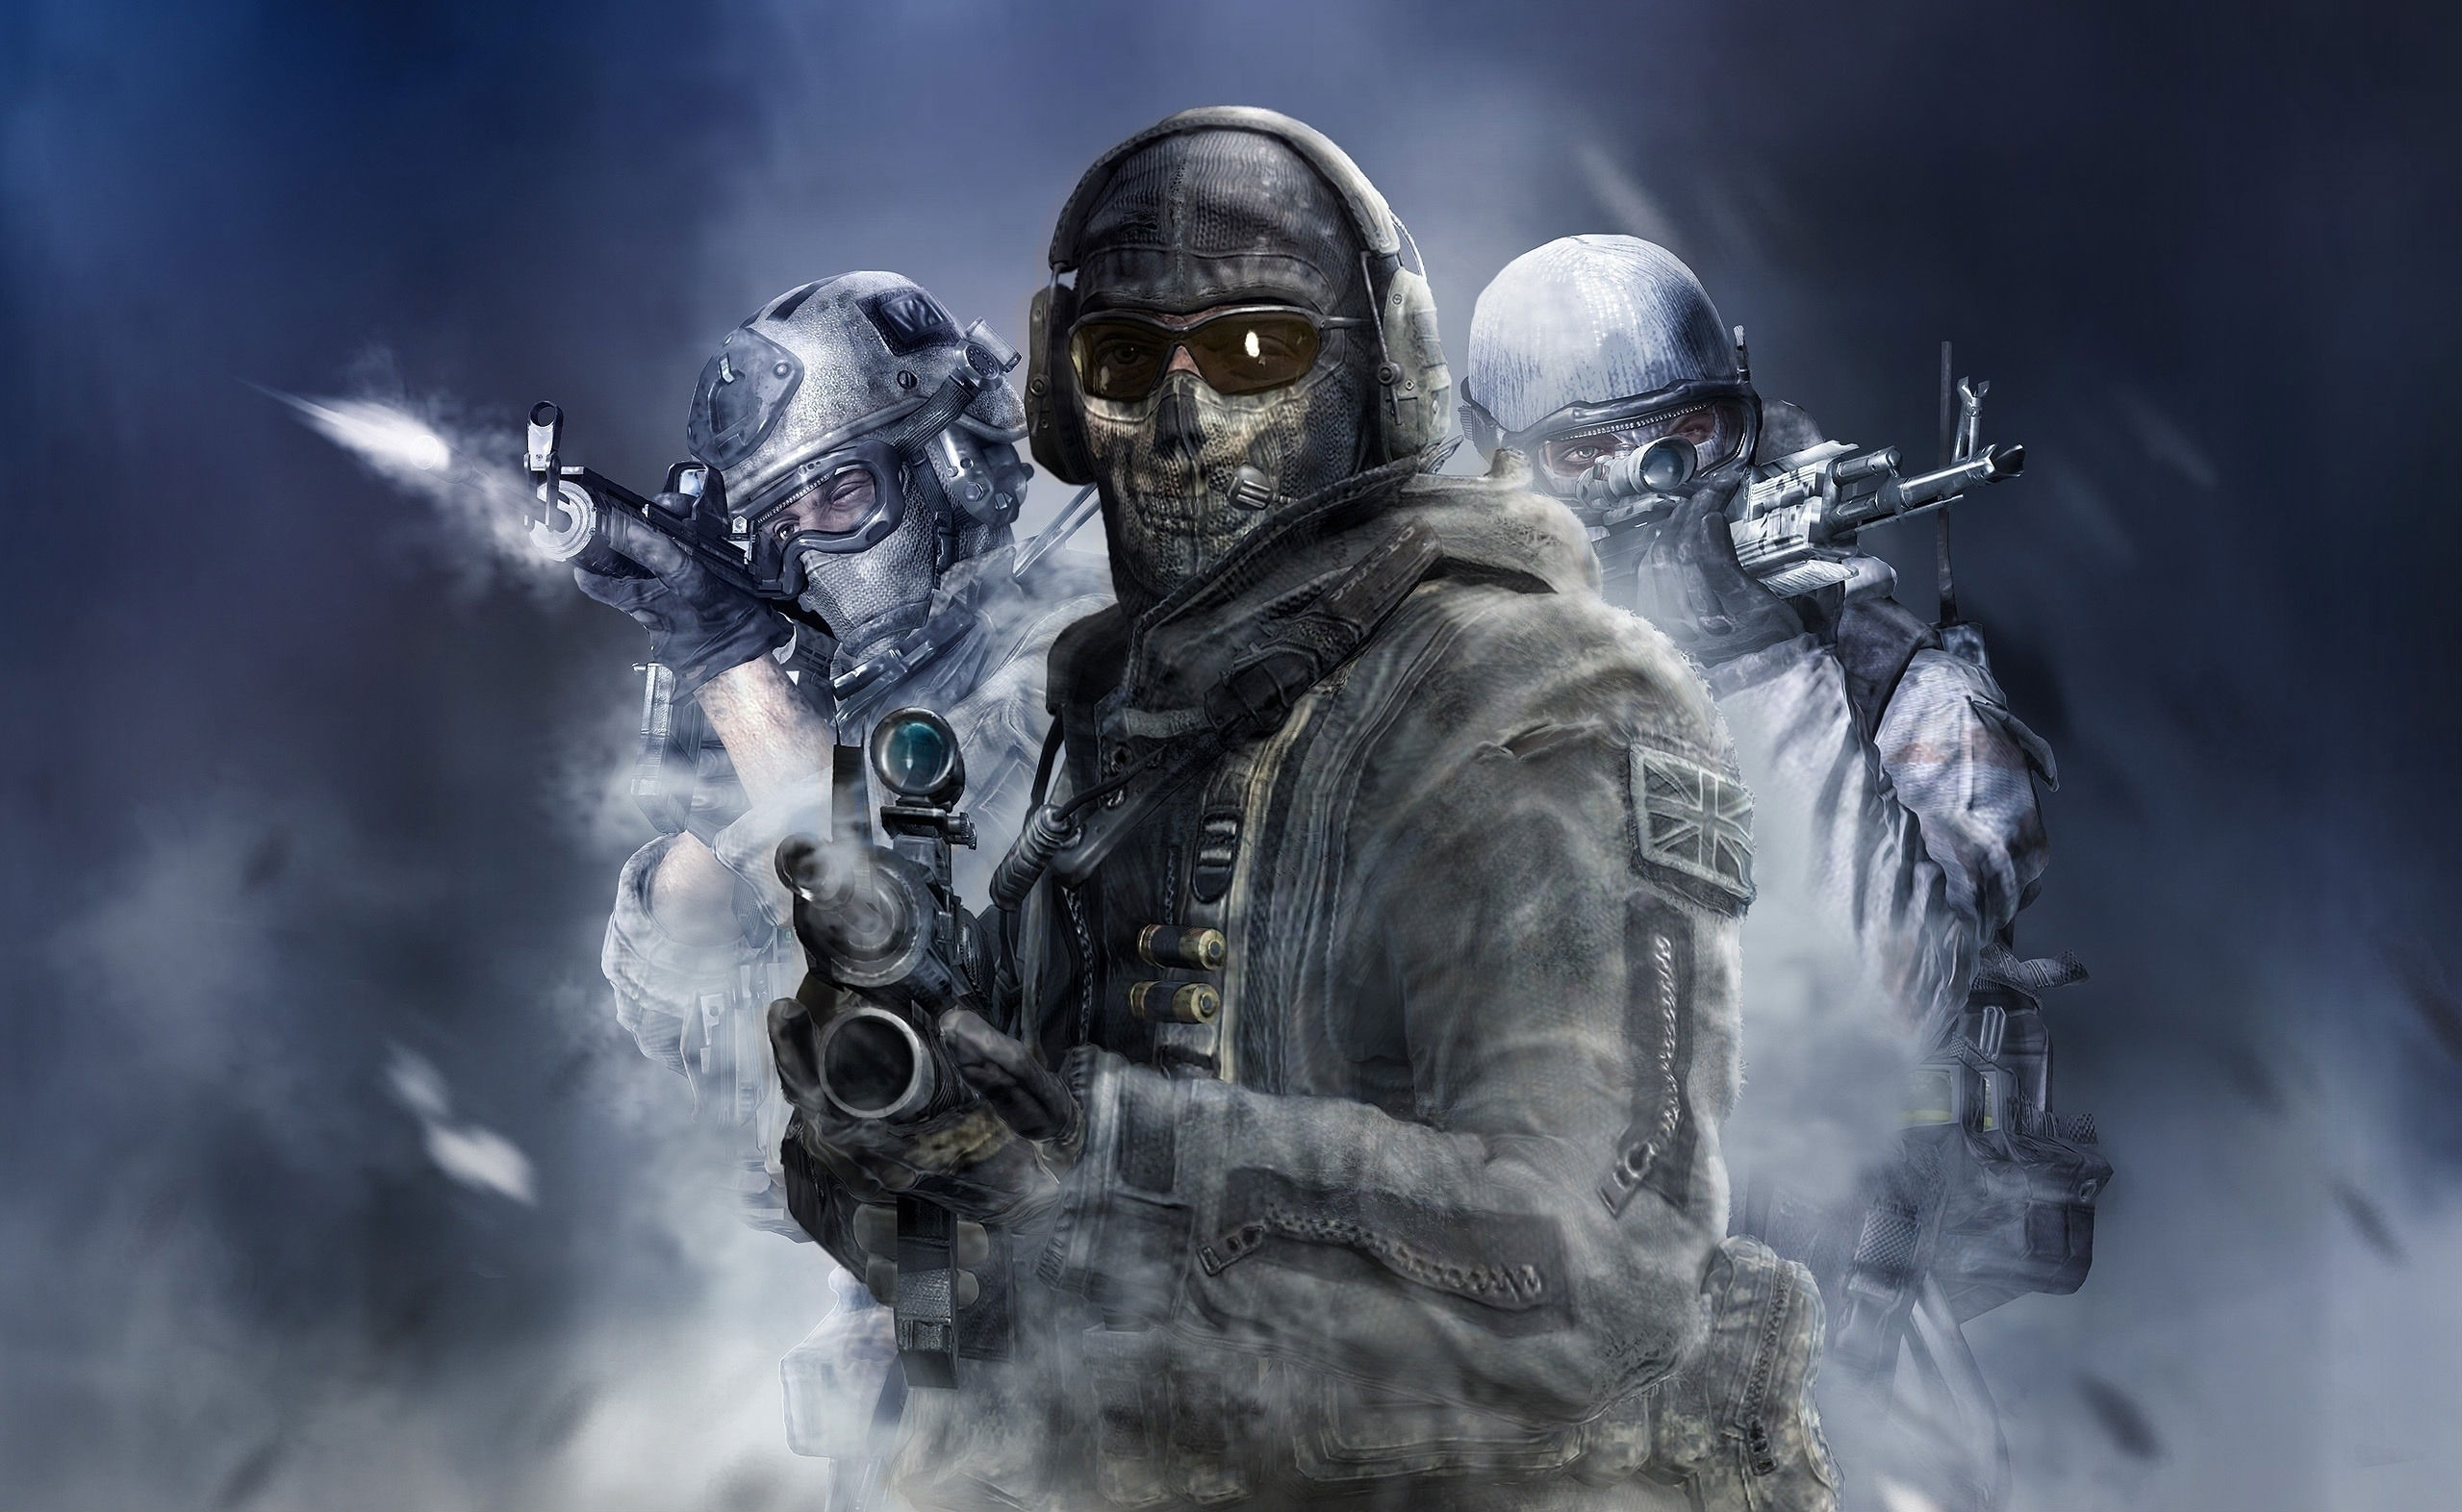 call of duty: modern warfare full hd wallpaper and background image